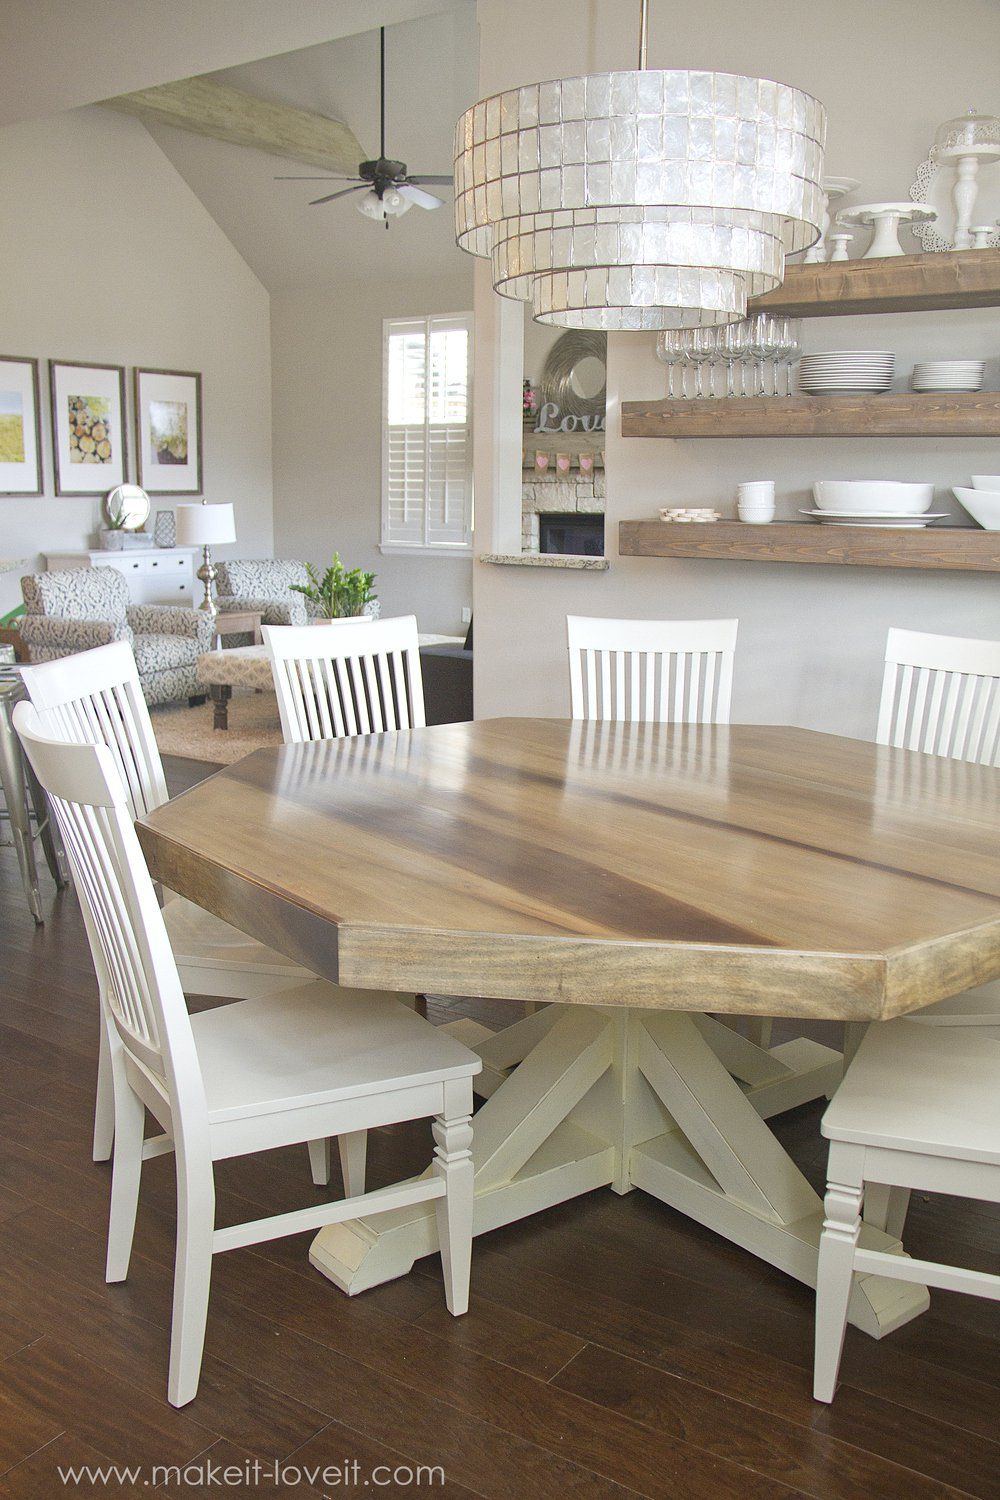 Diy Octagon Dining Room Table With A Farmhouse Base Seats 8 Comfortably Via Make It And Love